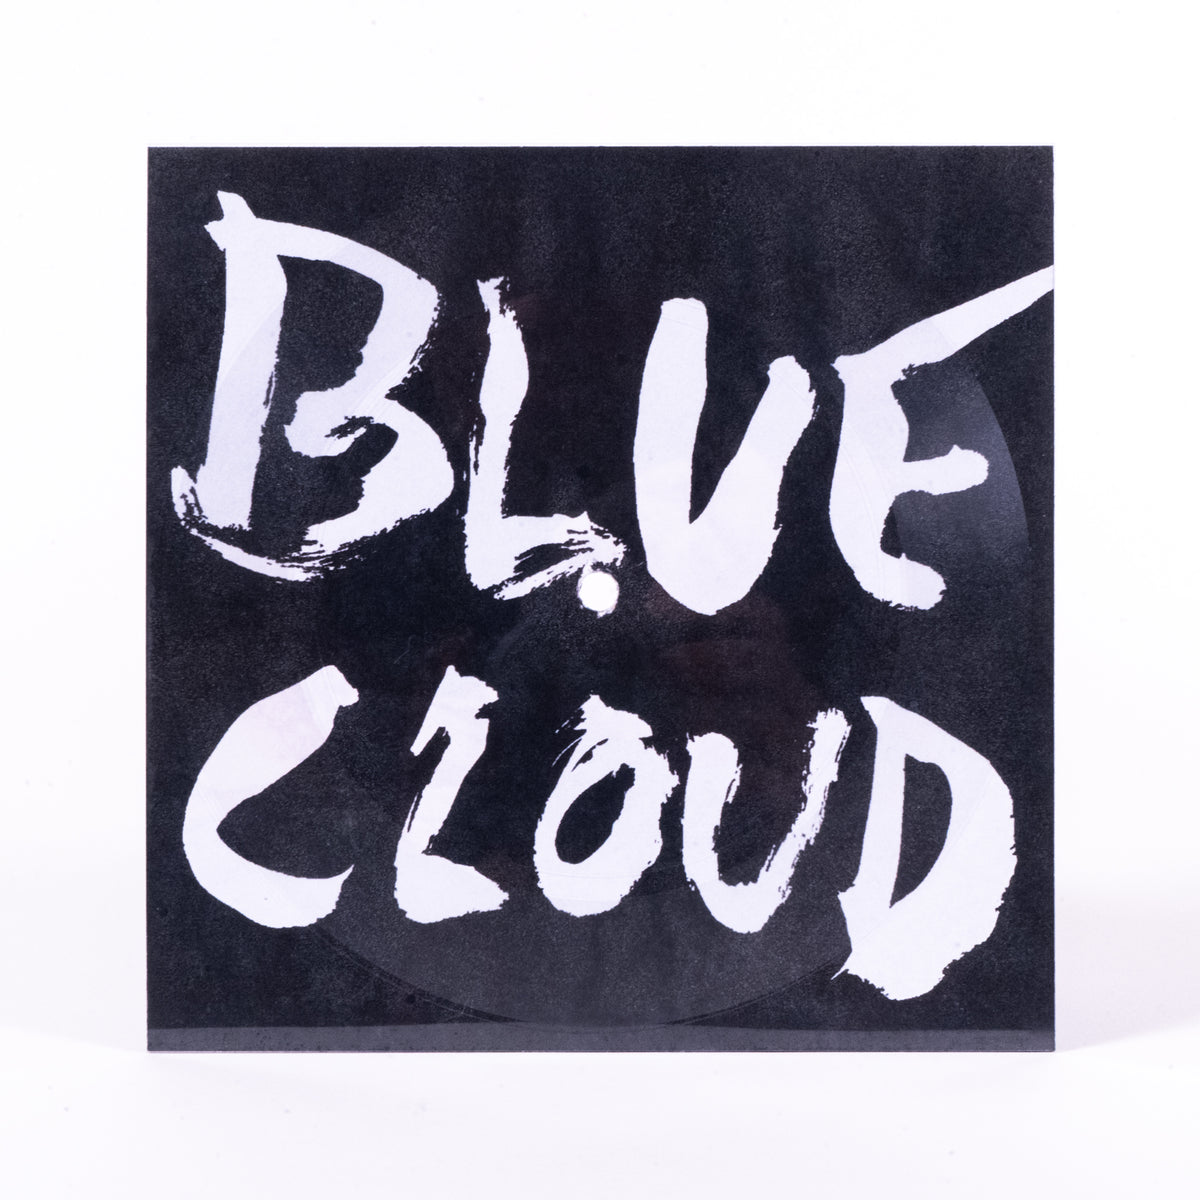 "HHH001 - Blue Cloud ""Wake Up"" - Lathe-Cut 7"" / Digital"